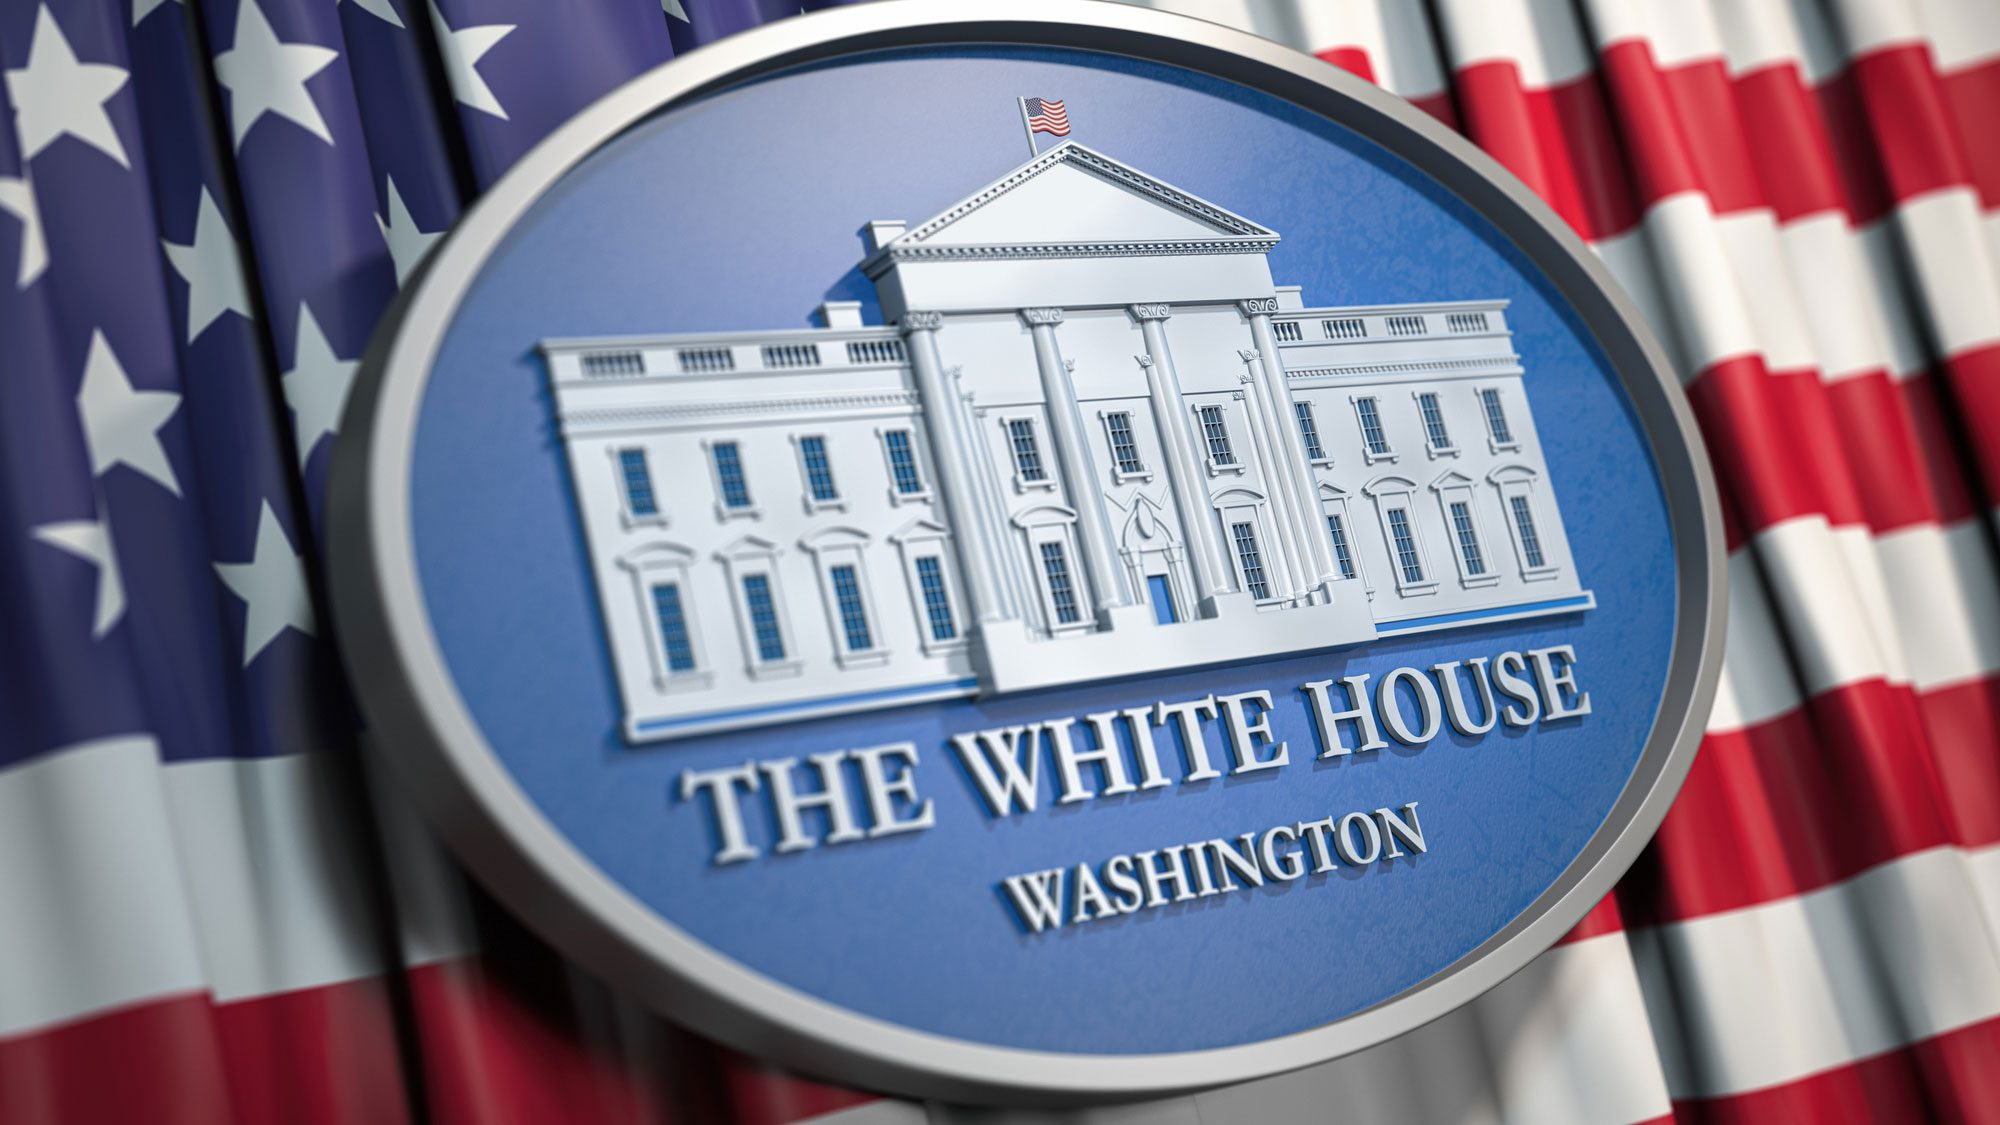 Oval White House plaque lies against an American flag backdrop.